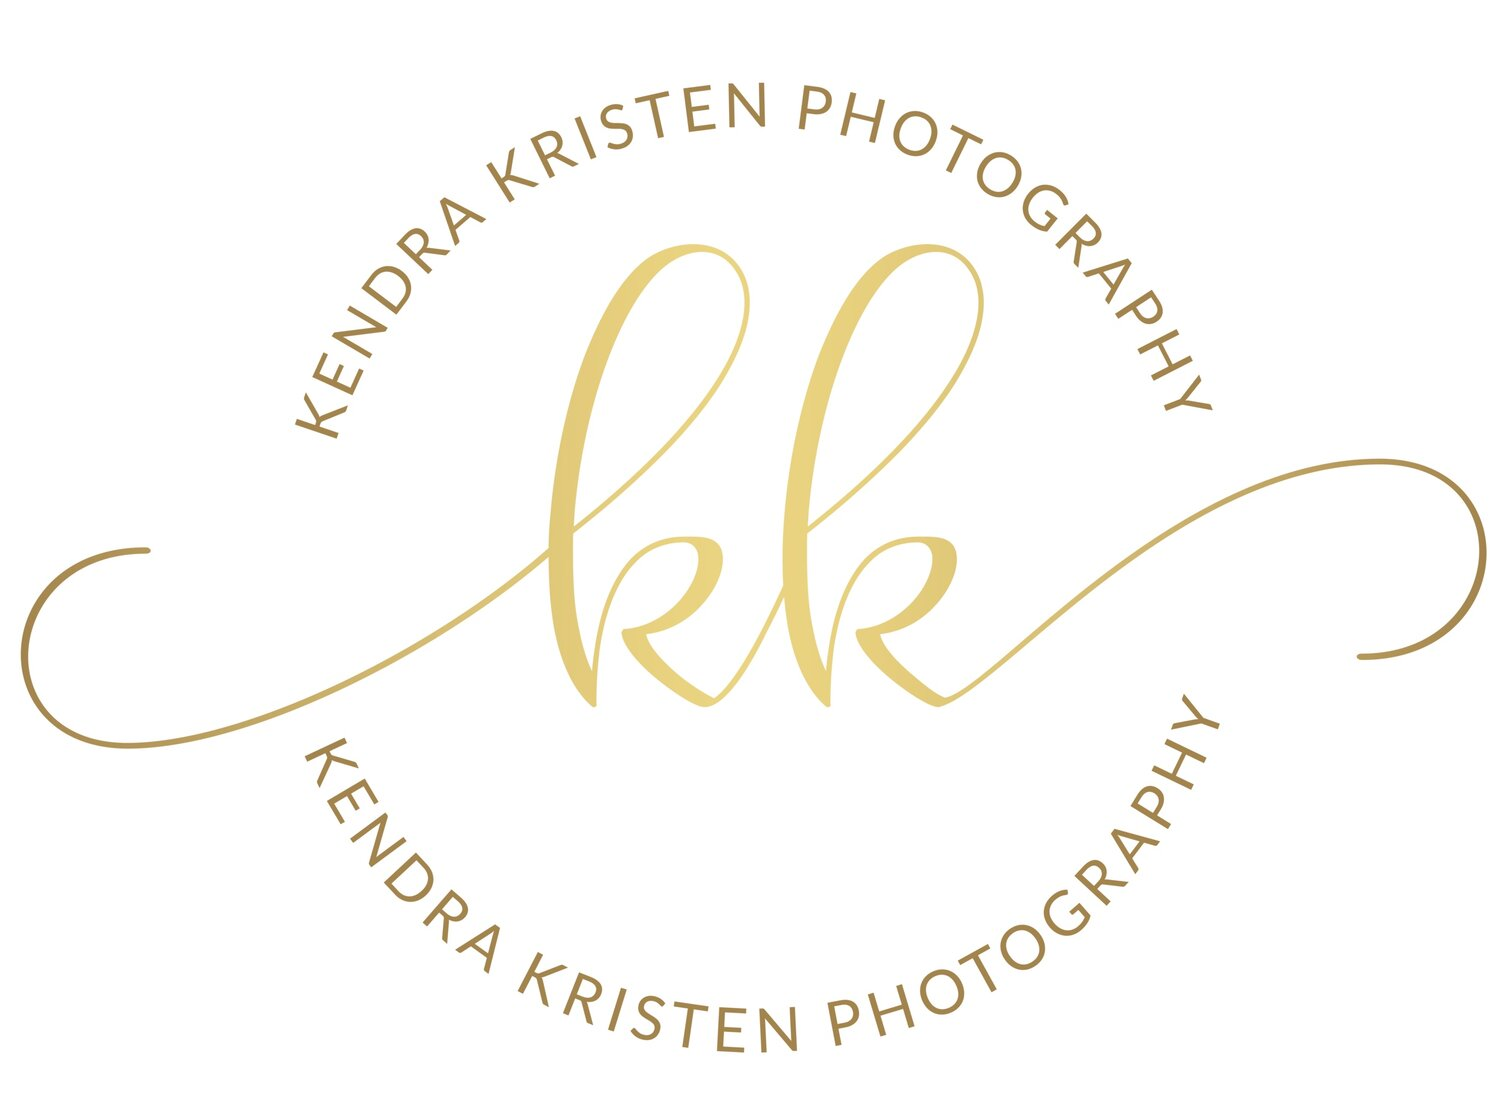 Kendra K Photography